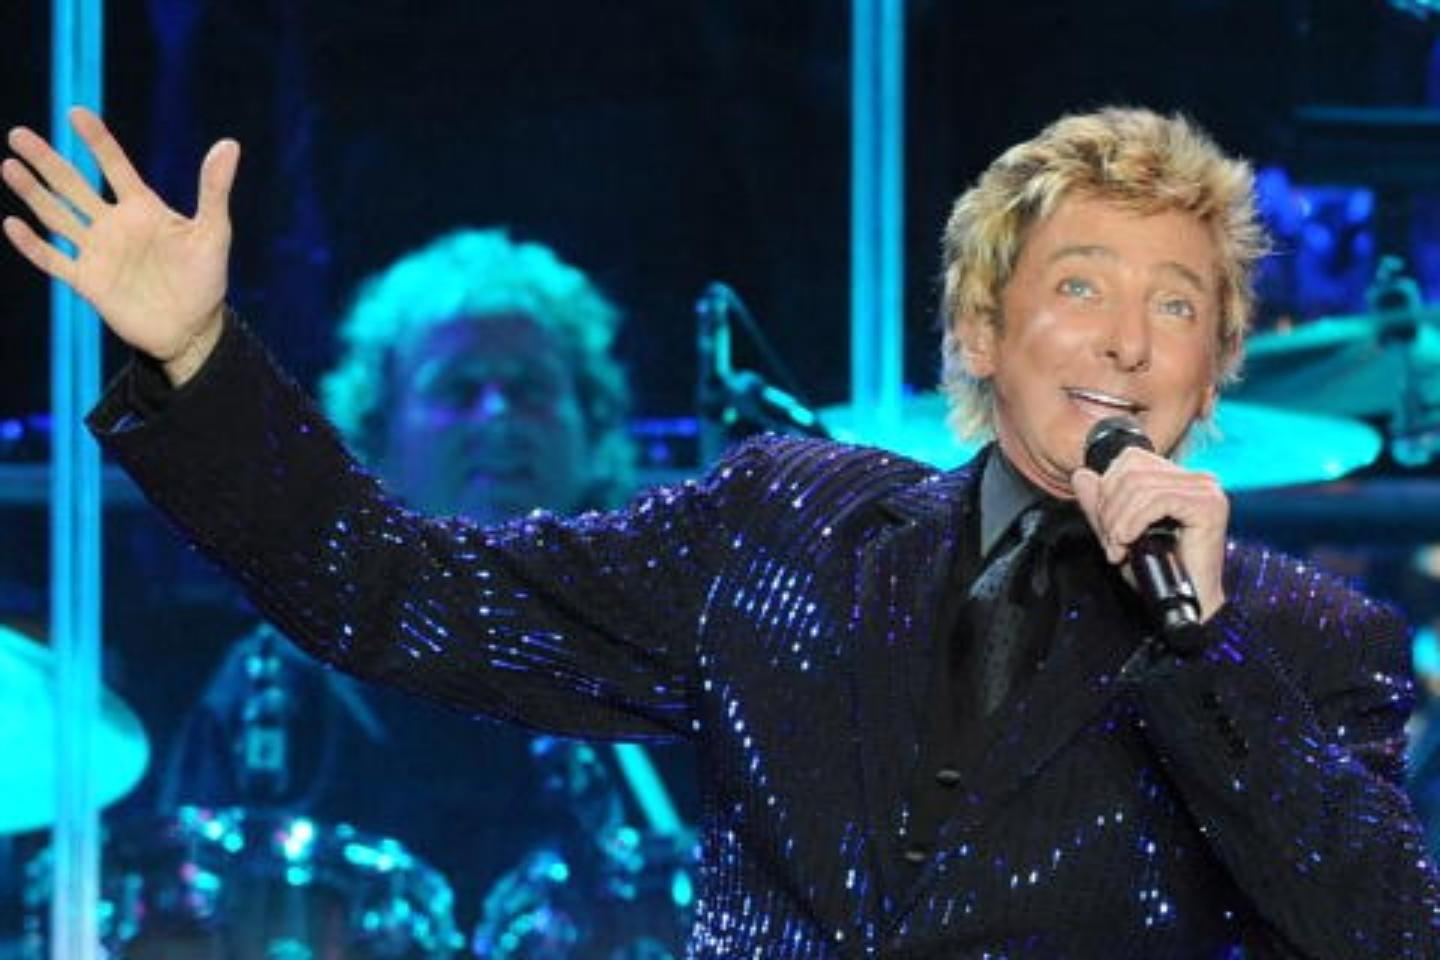 Barry Manilow Tour Dates 2020 Barry Manilow Tickets | Barry Manilow Tour Dates 2019 and Concert